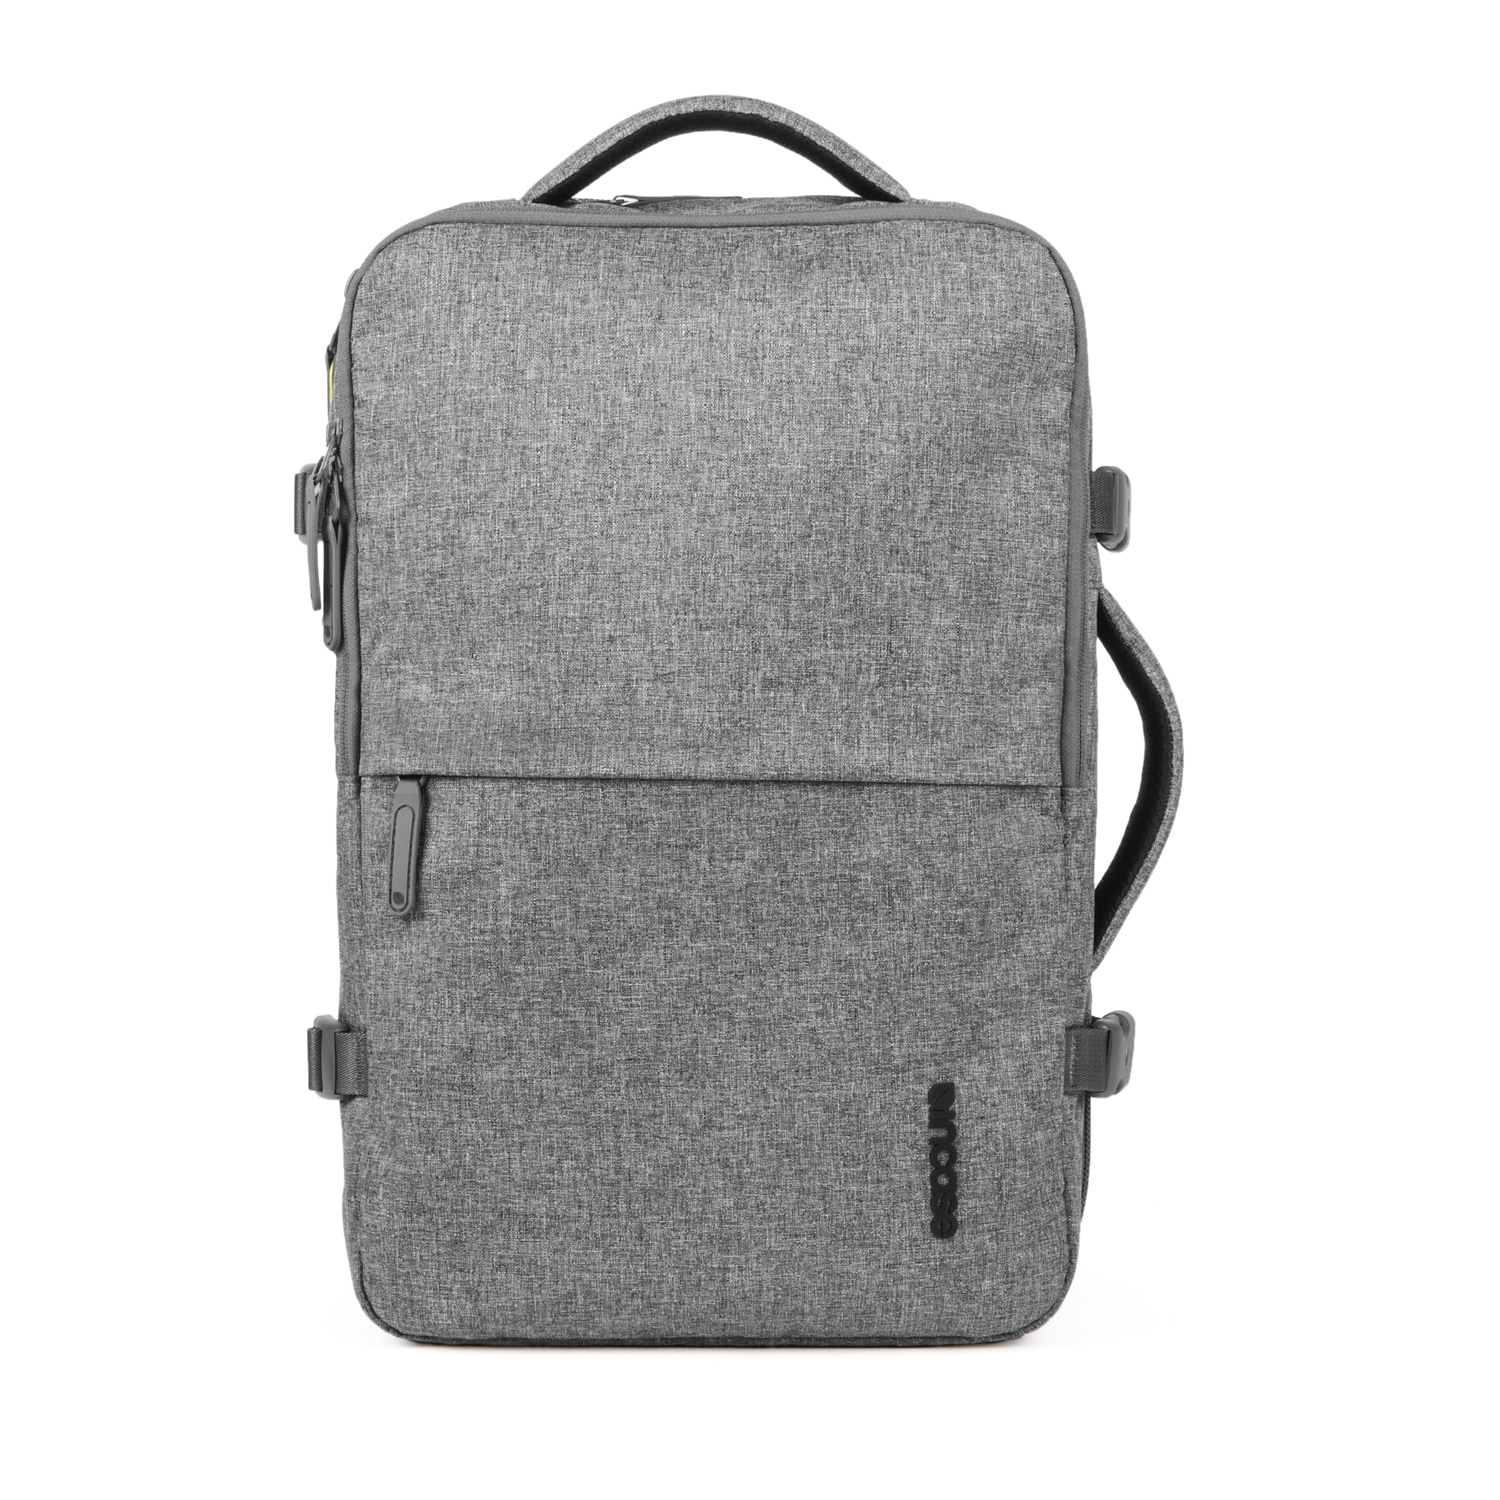 b73dd17ff419 Buy Incase Eo Travel Backpack - Heather Grey in Singapore & Malaysia - The  Planet Traveller